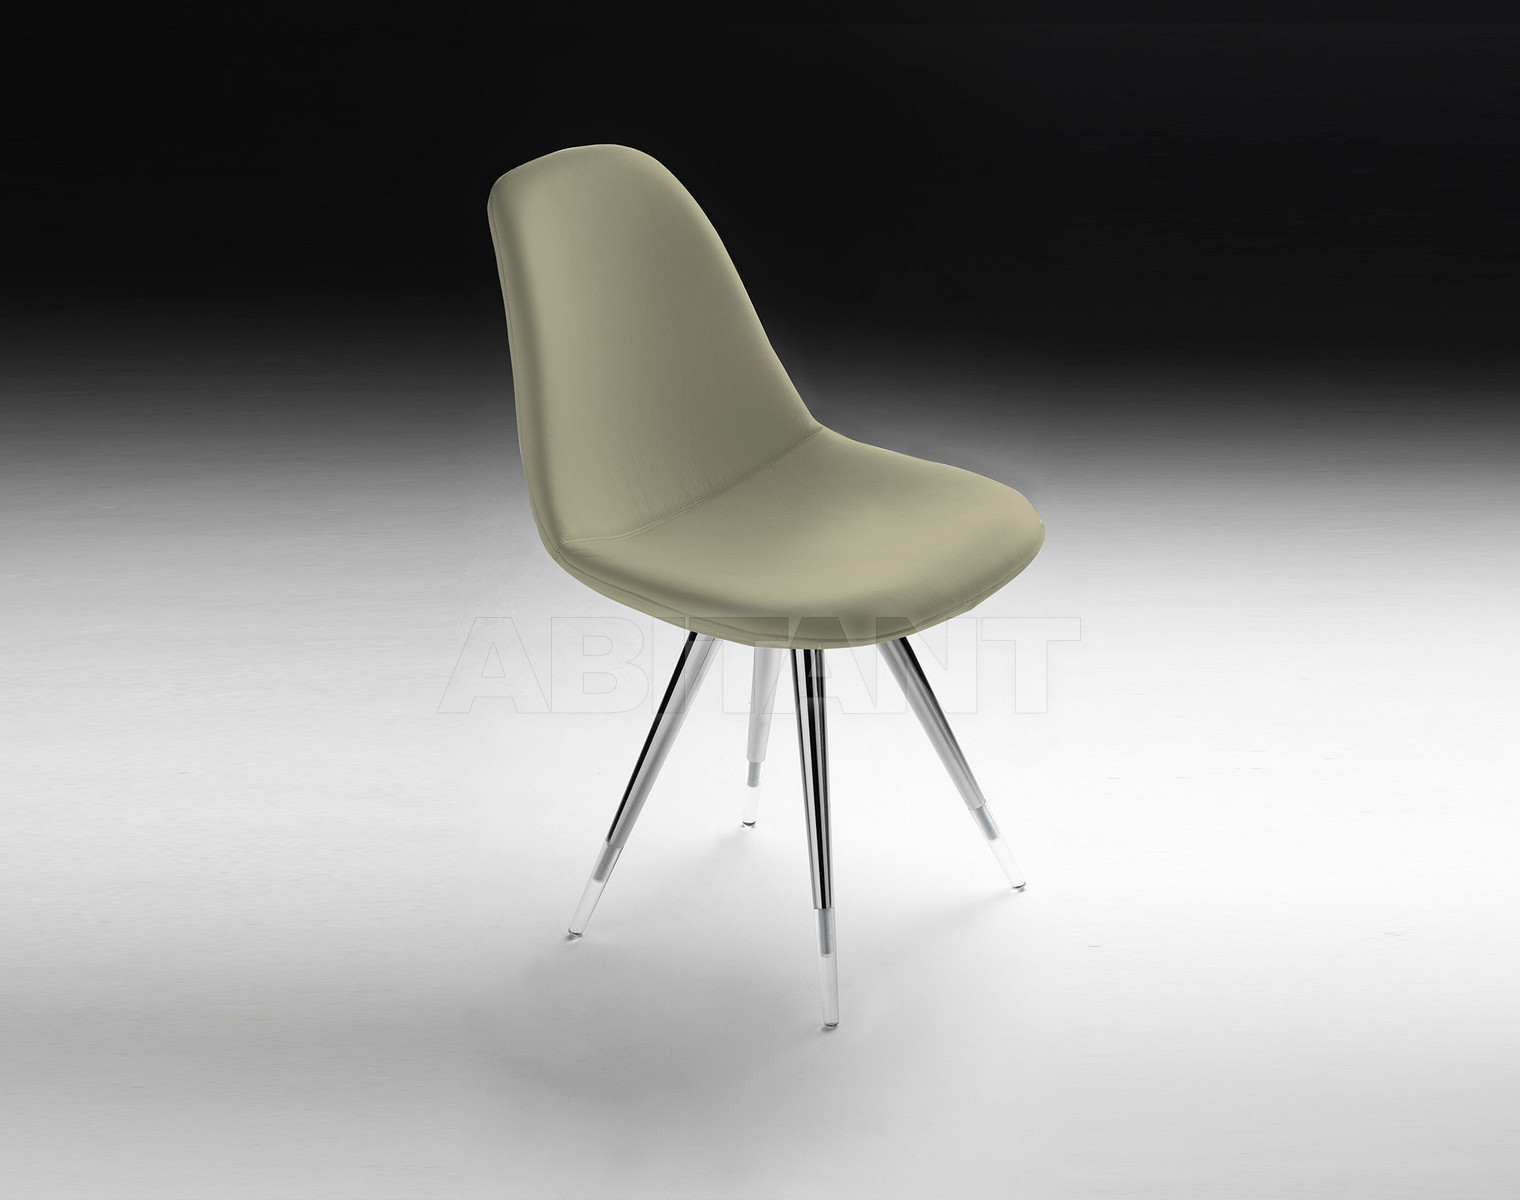 Купить Стул Kubikoff Gino Lemson & Ruud Bos Angel'POP'Chair' 02